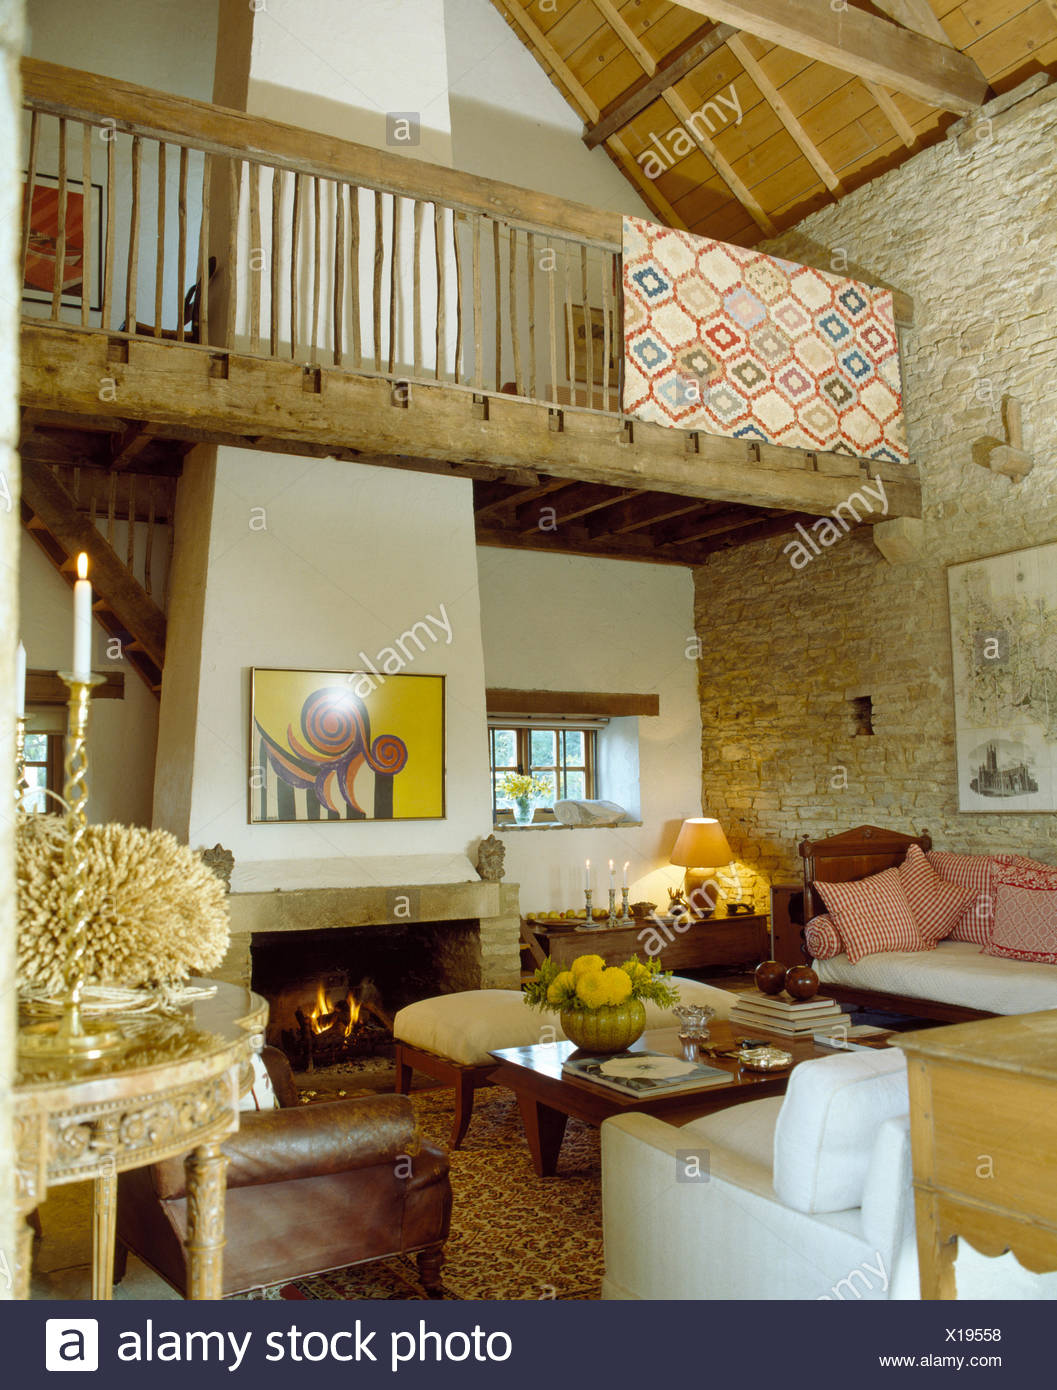 rug draped on rustic banisters on mezzanine gallery above barn